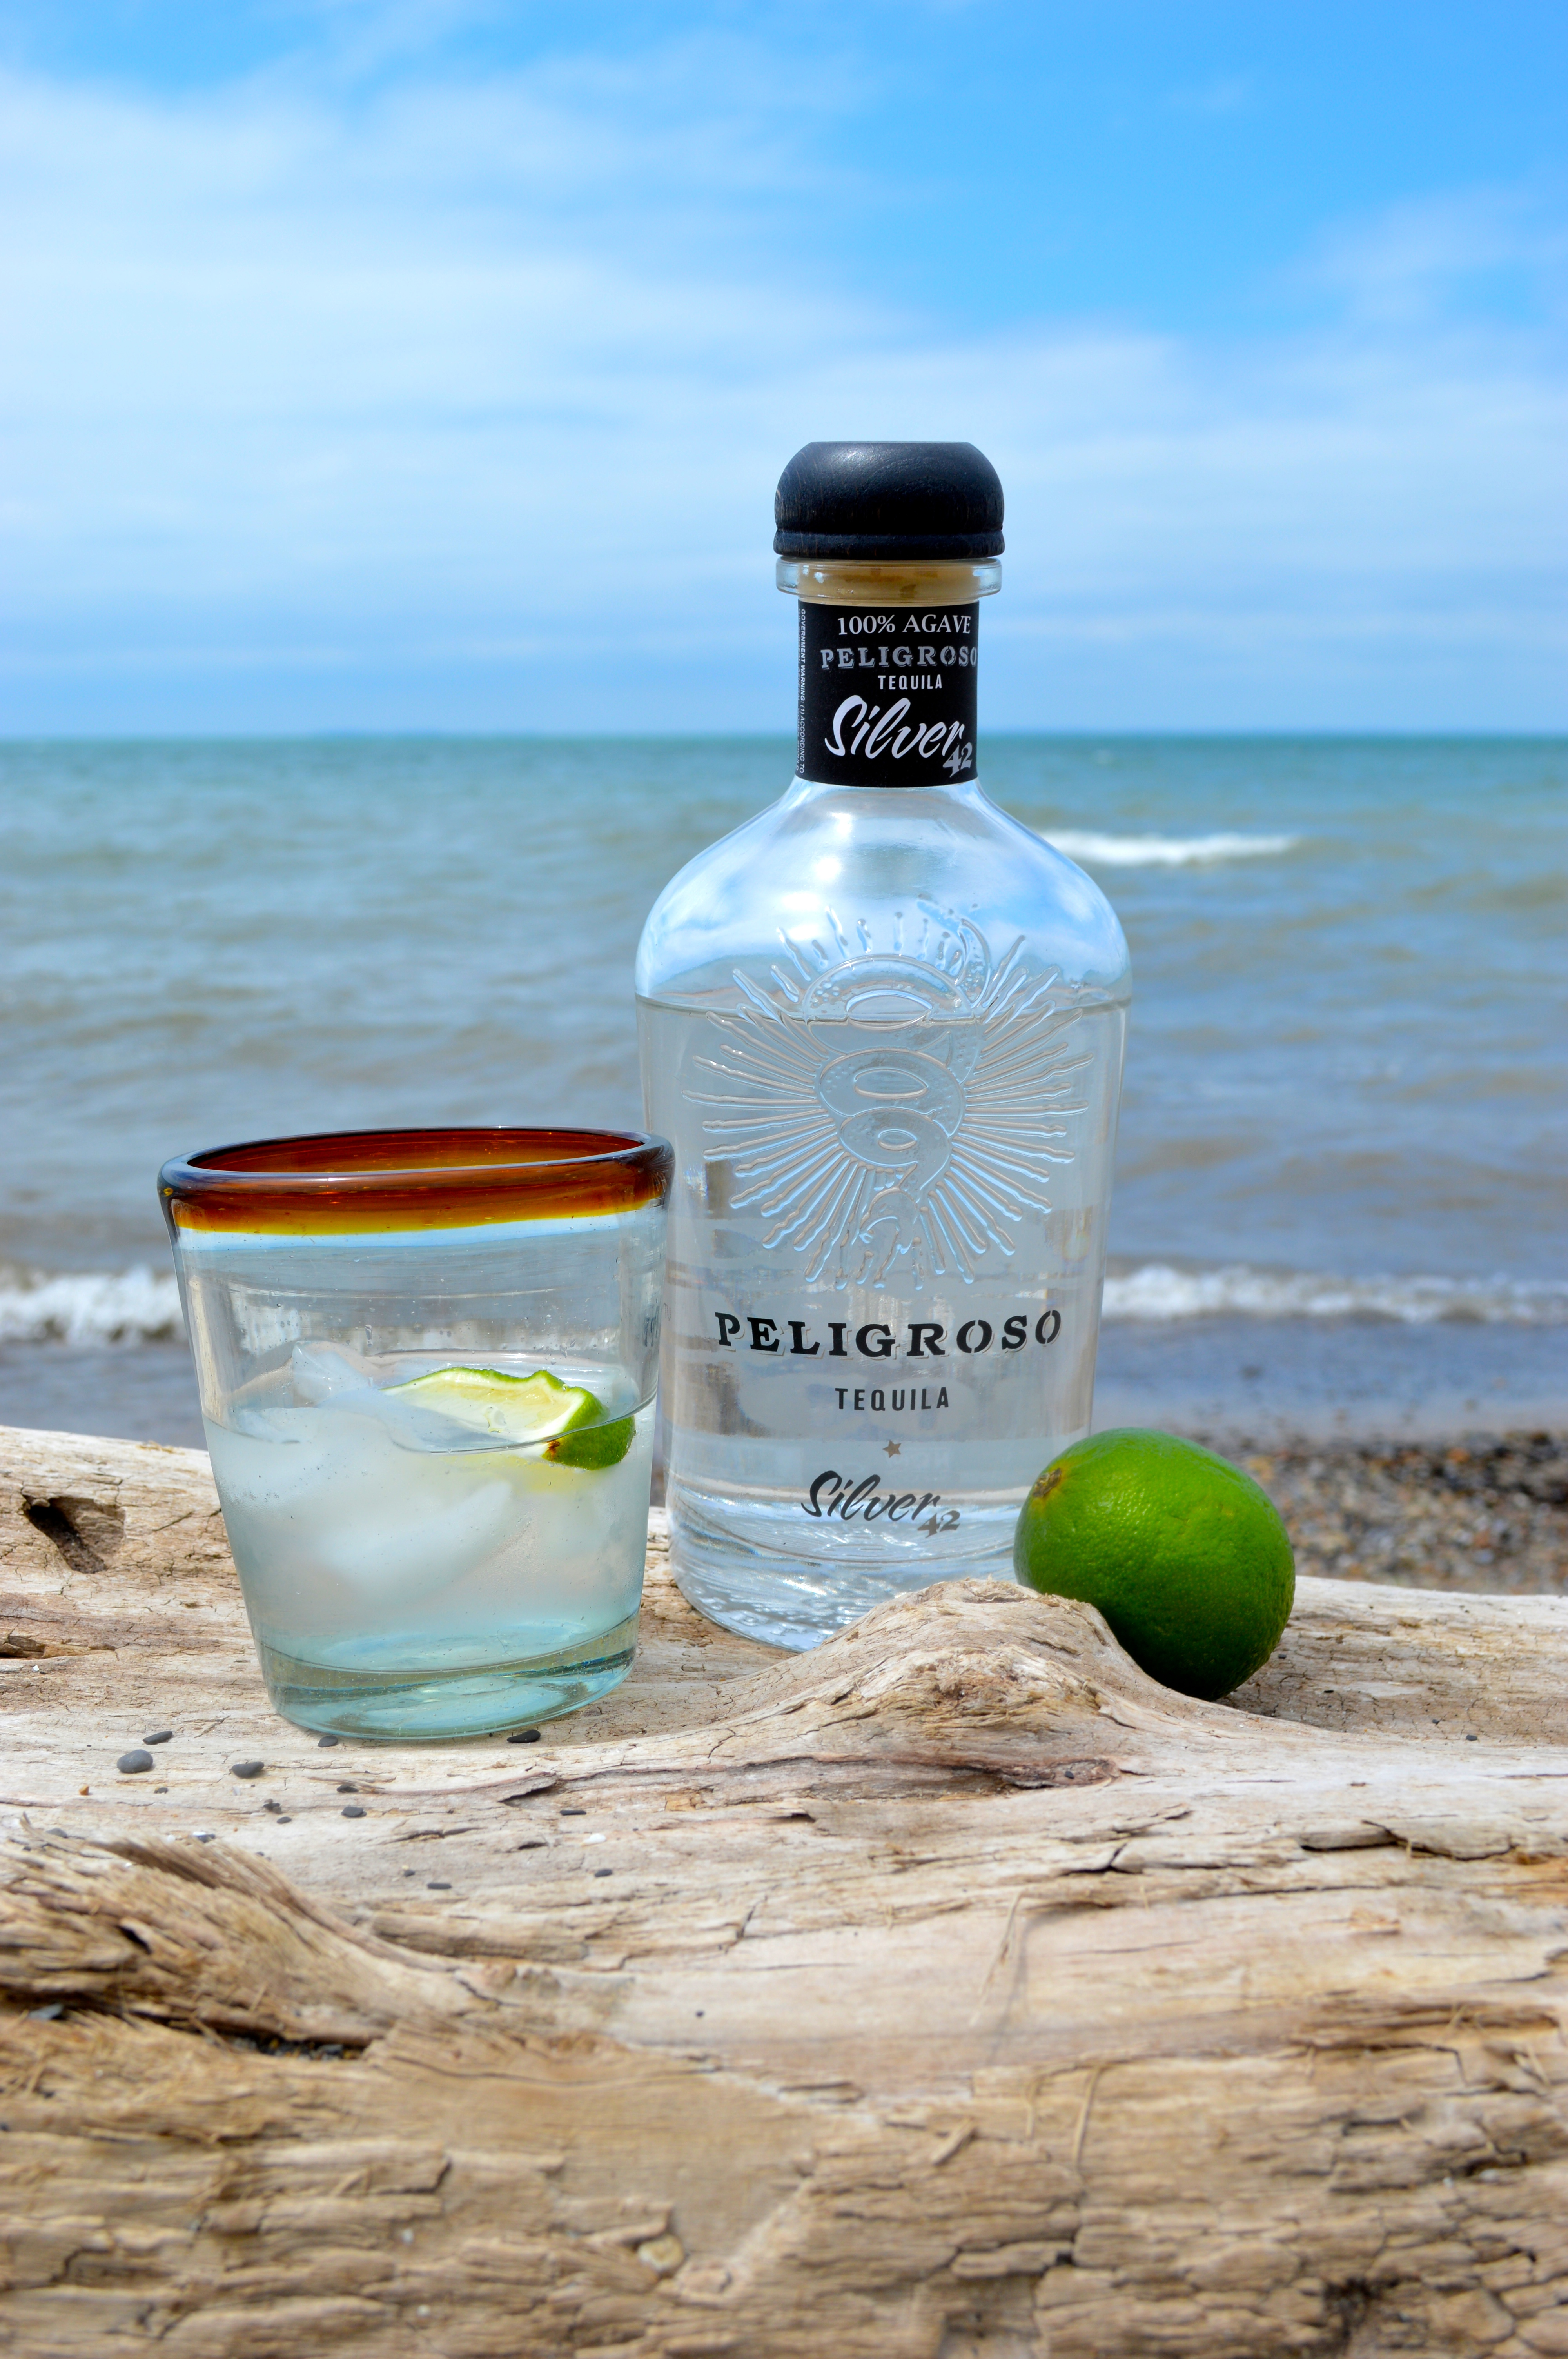 Peligroso Tequila Review